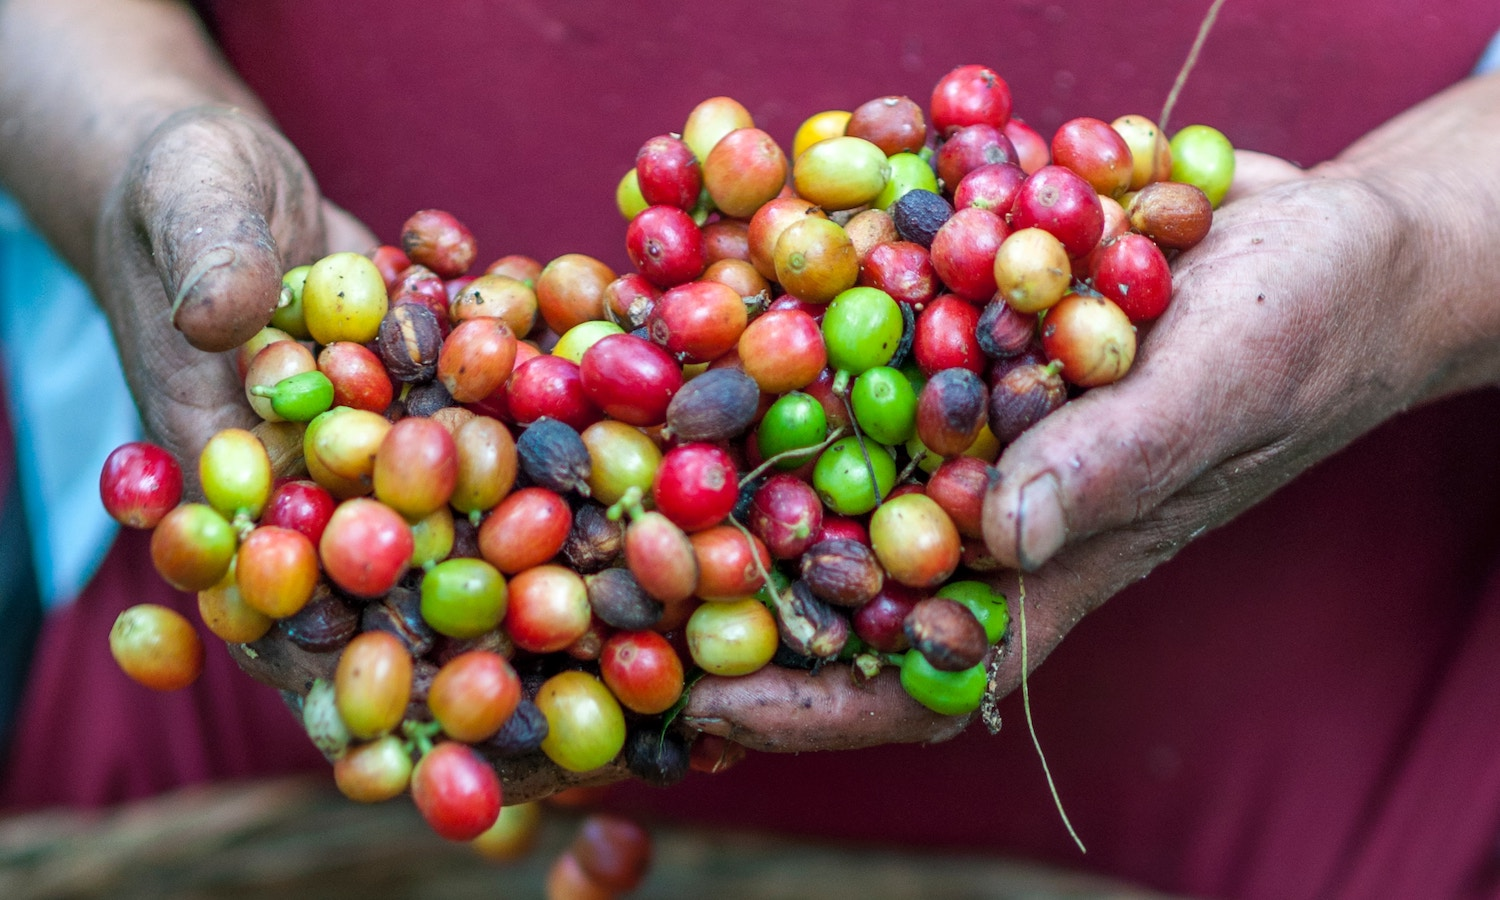 Amelia Nierenberg of the New York Times hosts Matt Swenson, Director of Coffee at Chameleon Cold-Brew, to talk about the tech, standards, and youth that are creating an exciting future for sustainable coffee.